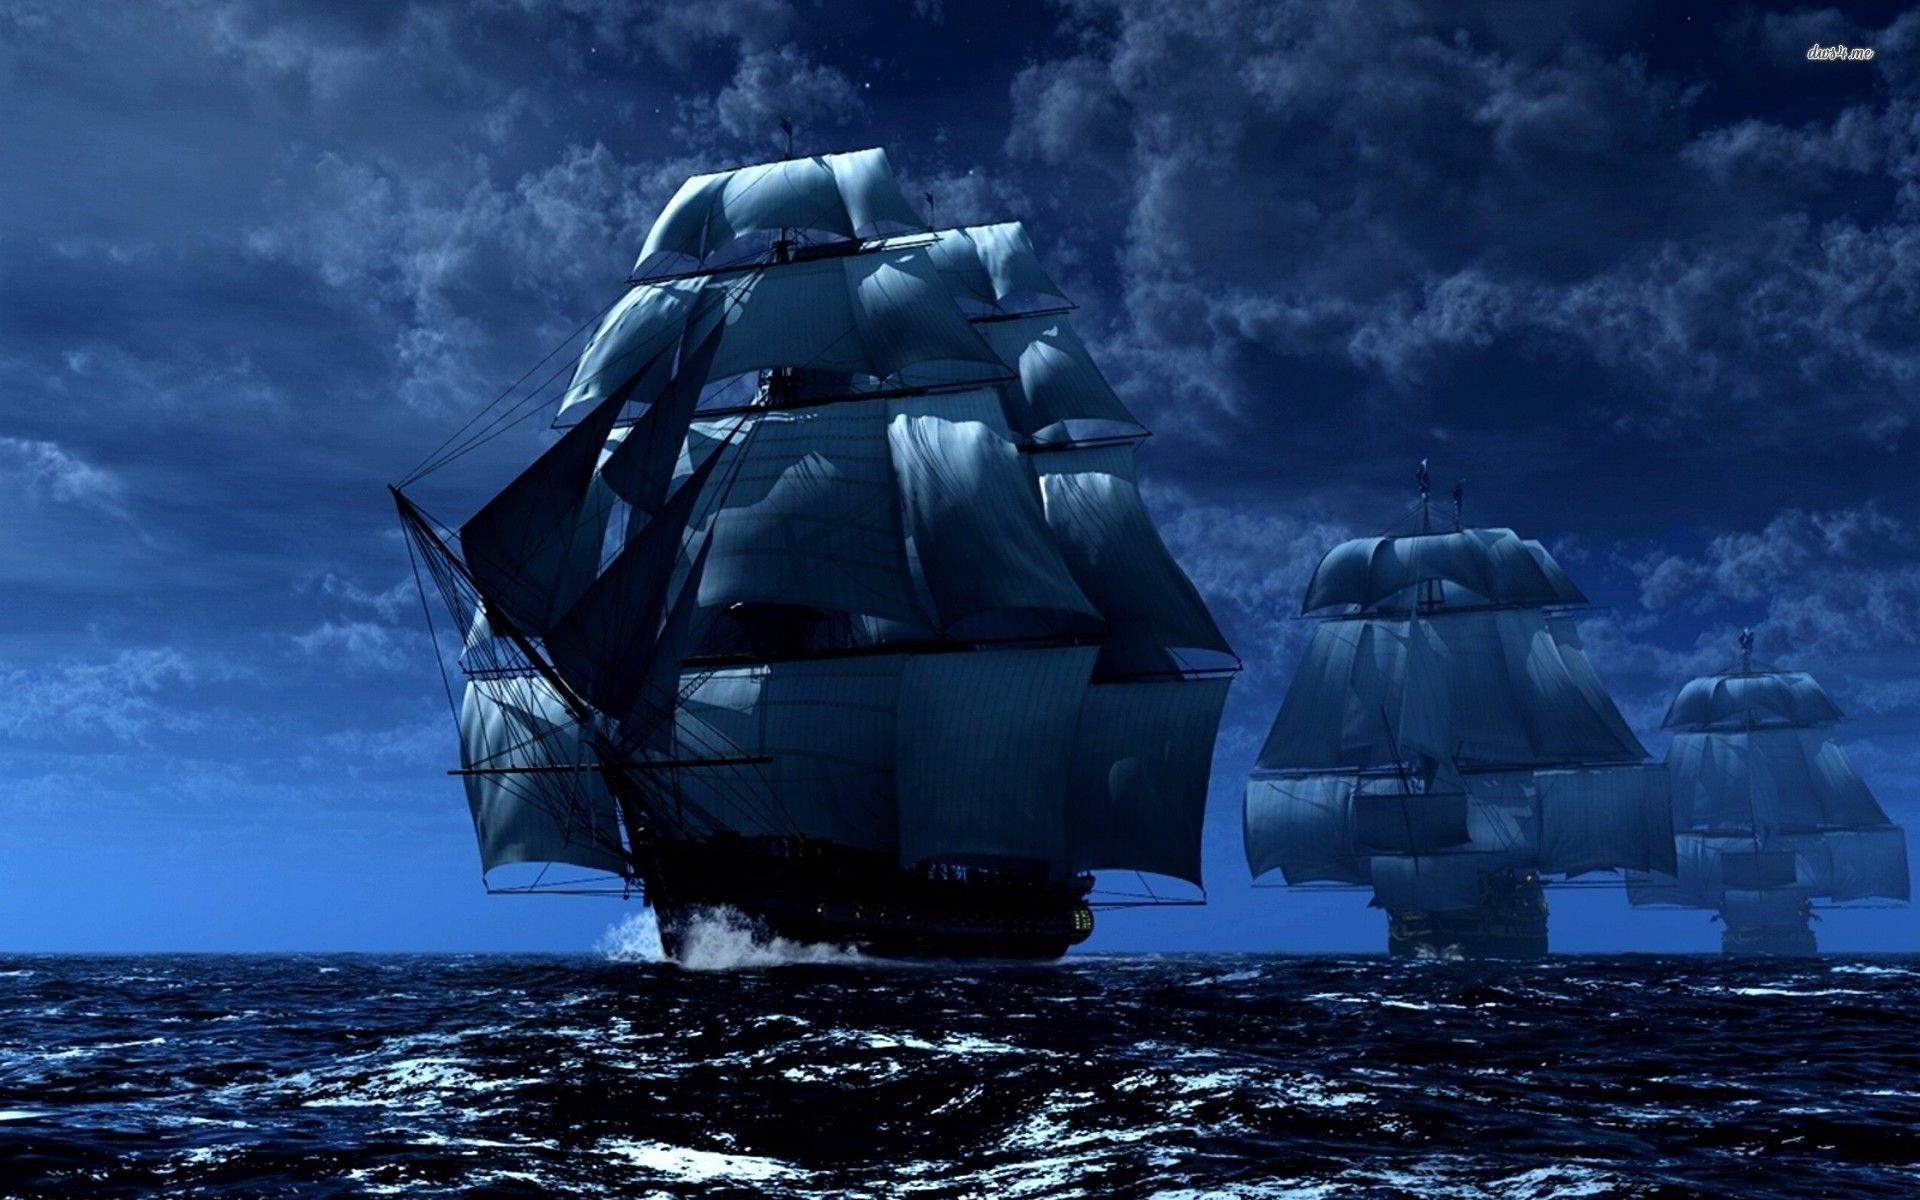 Pirates of the caribbean hd desktop wallpapers in 2019 pirati sirene - Pirates of the caribbean images hd ...